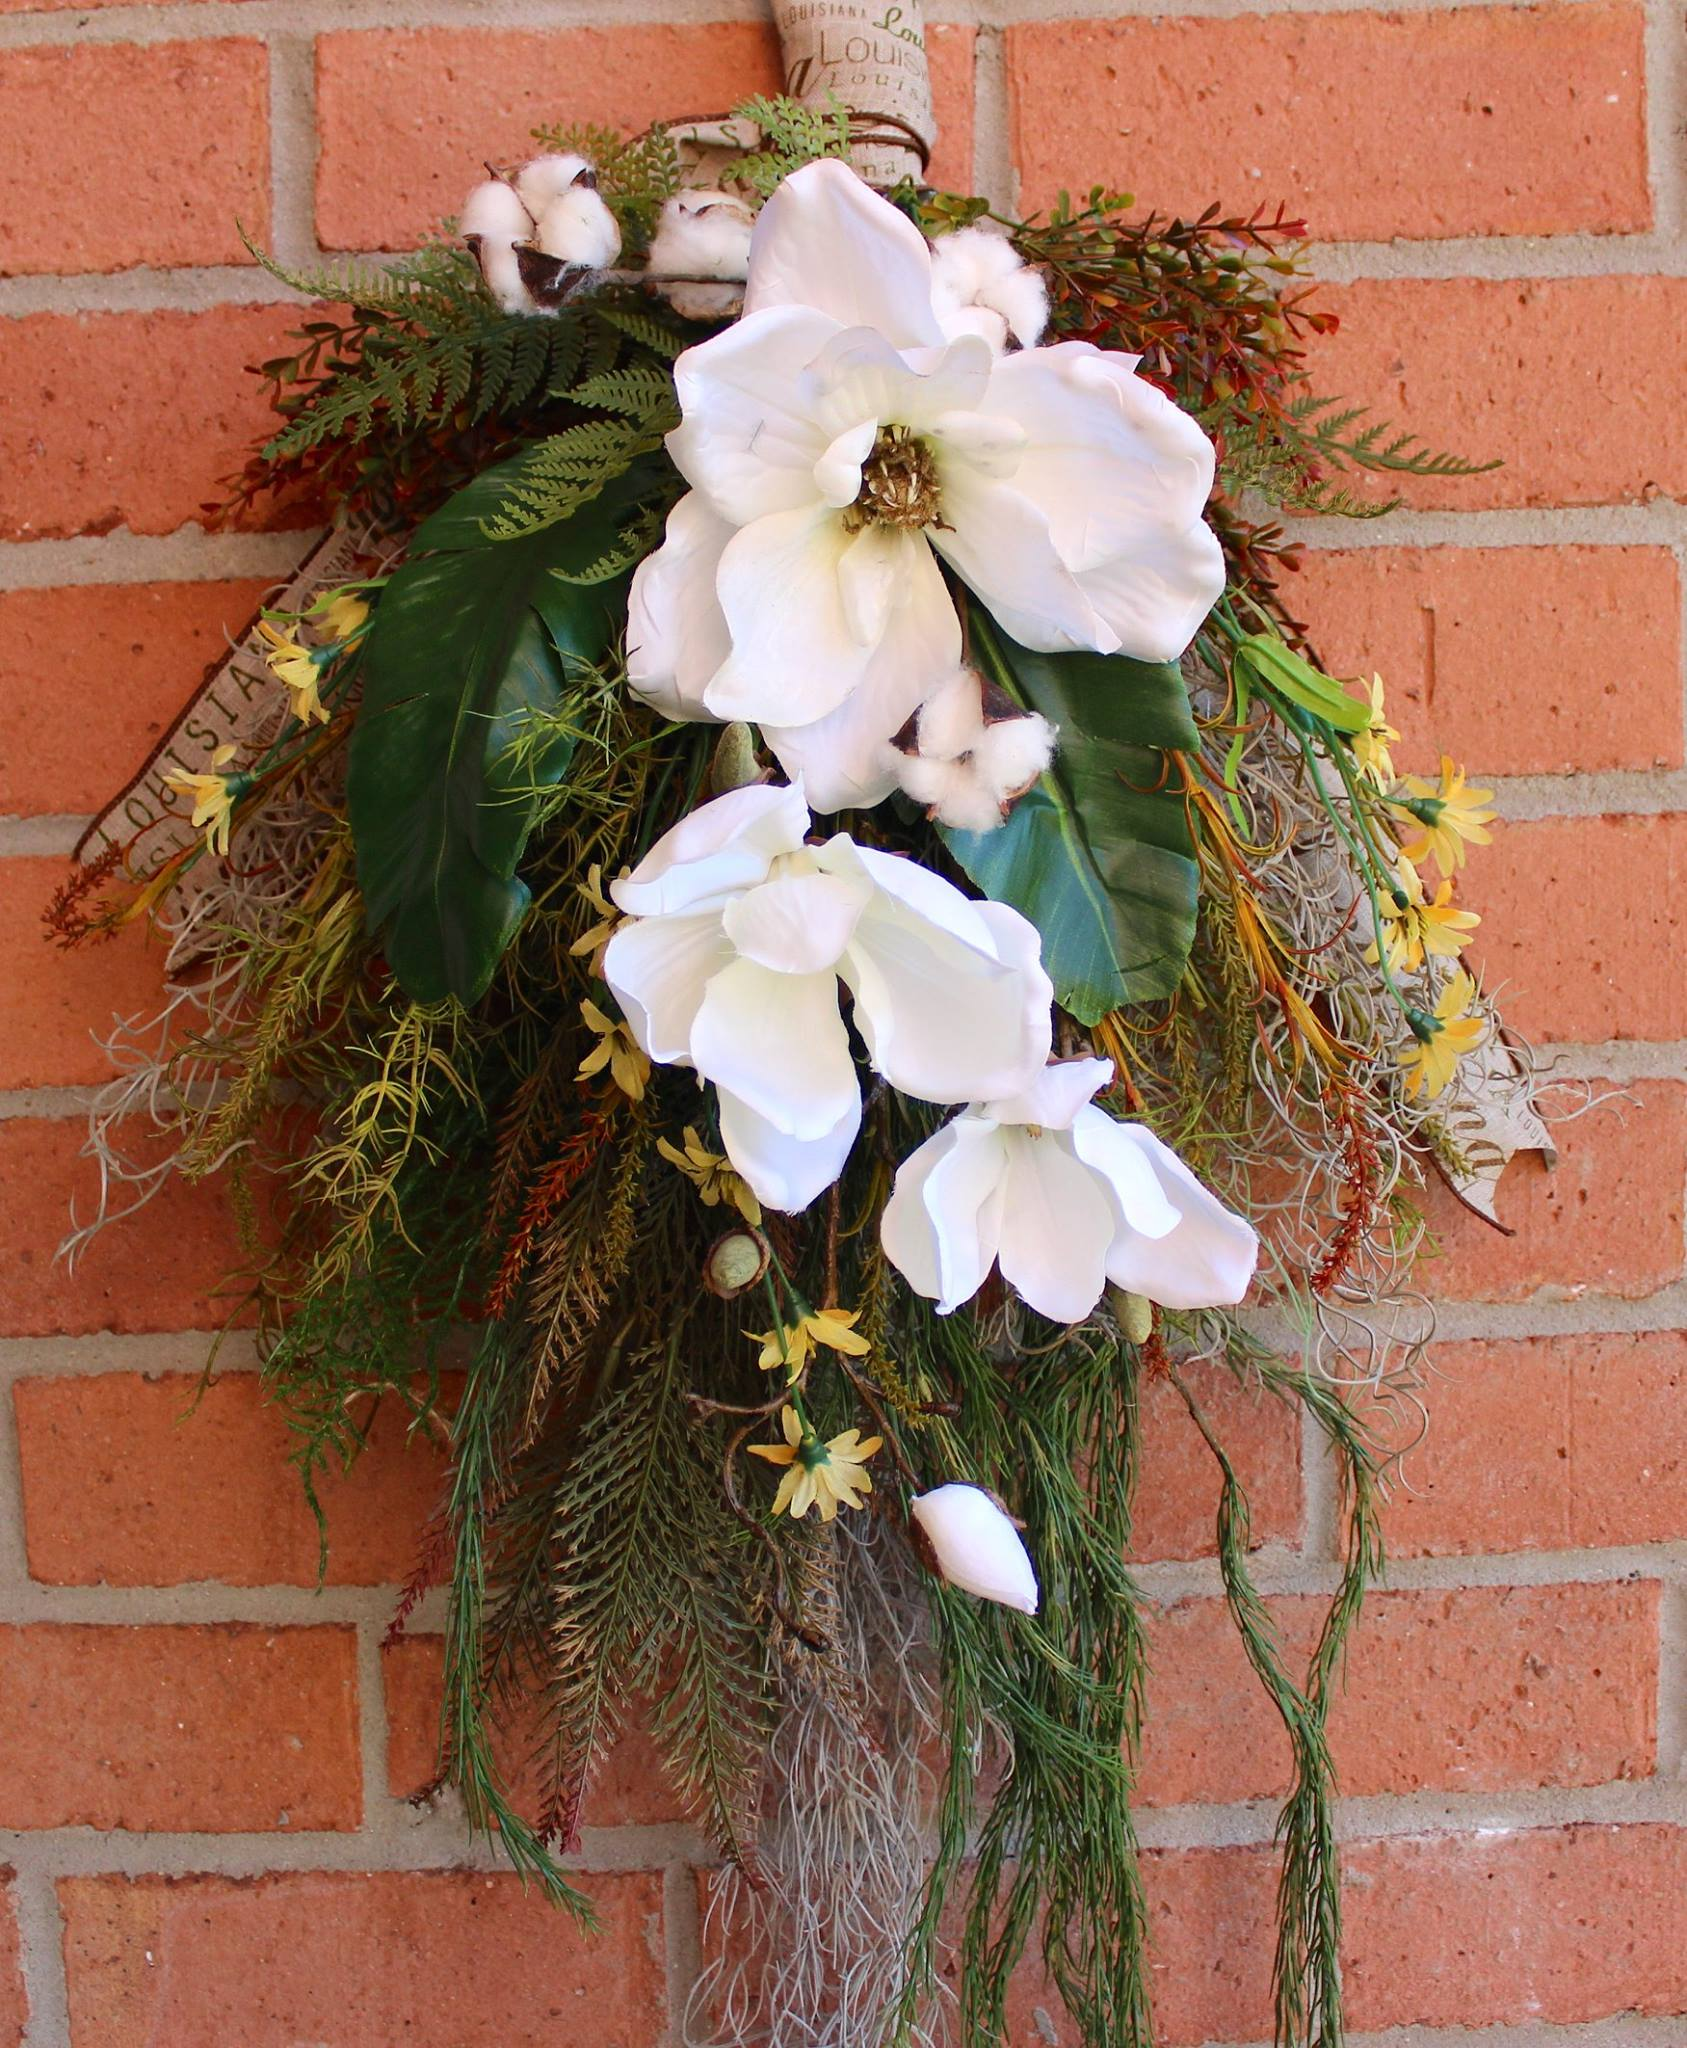 Louisiana Bayou Magnolia Floral Swag Wreath